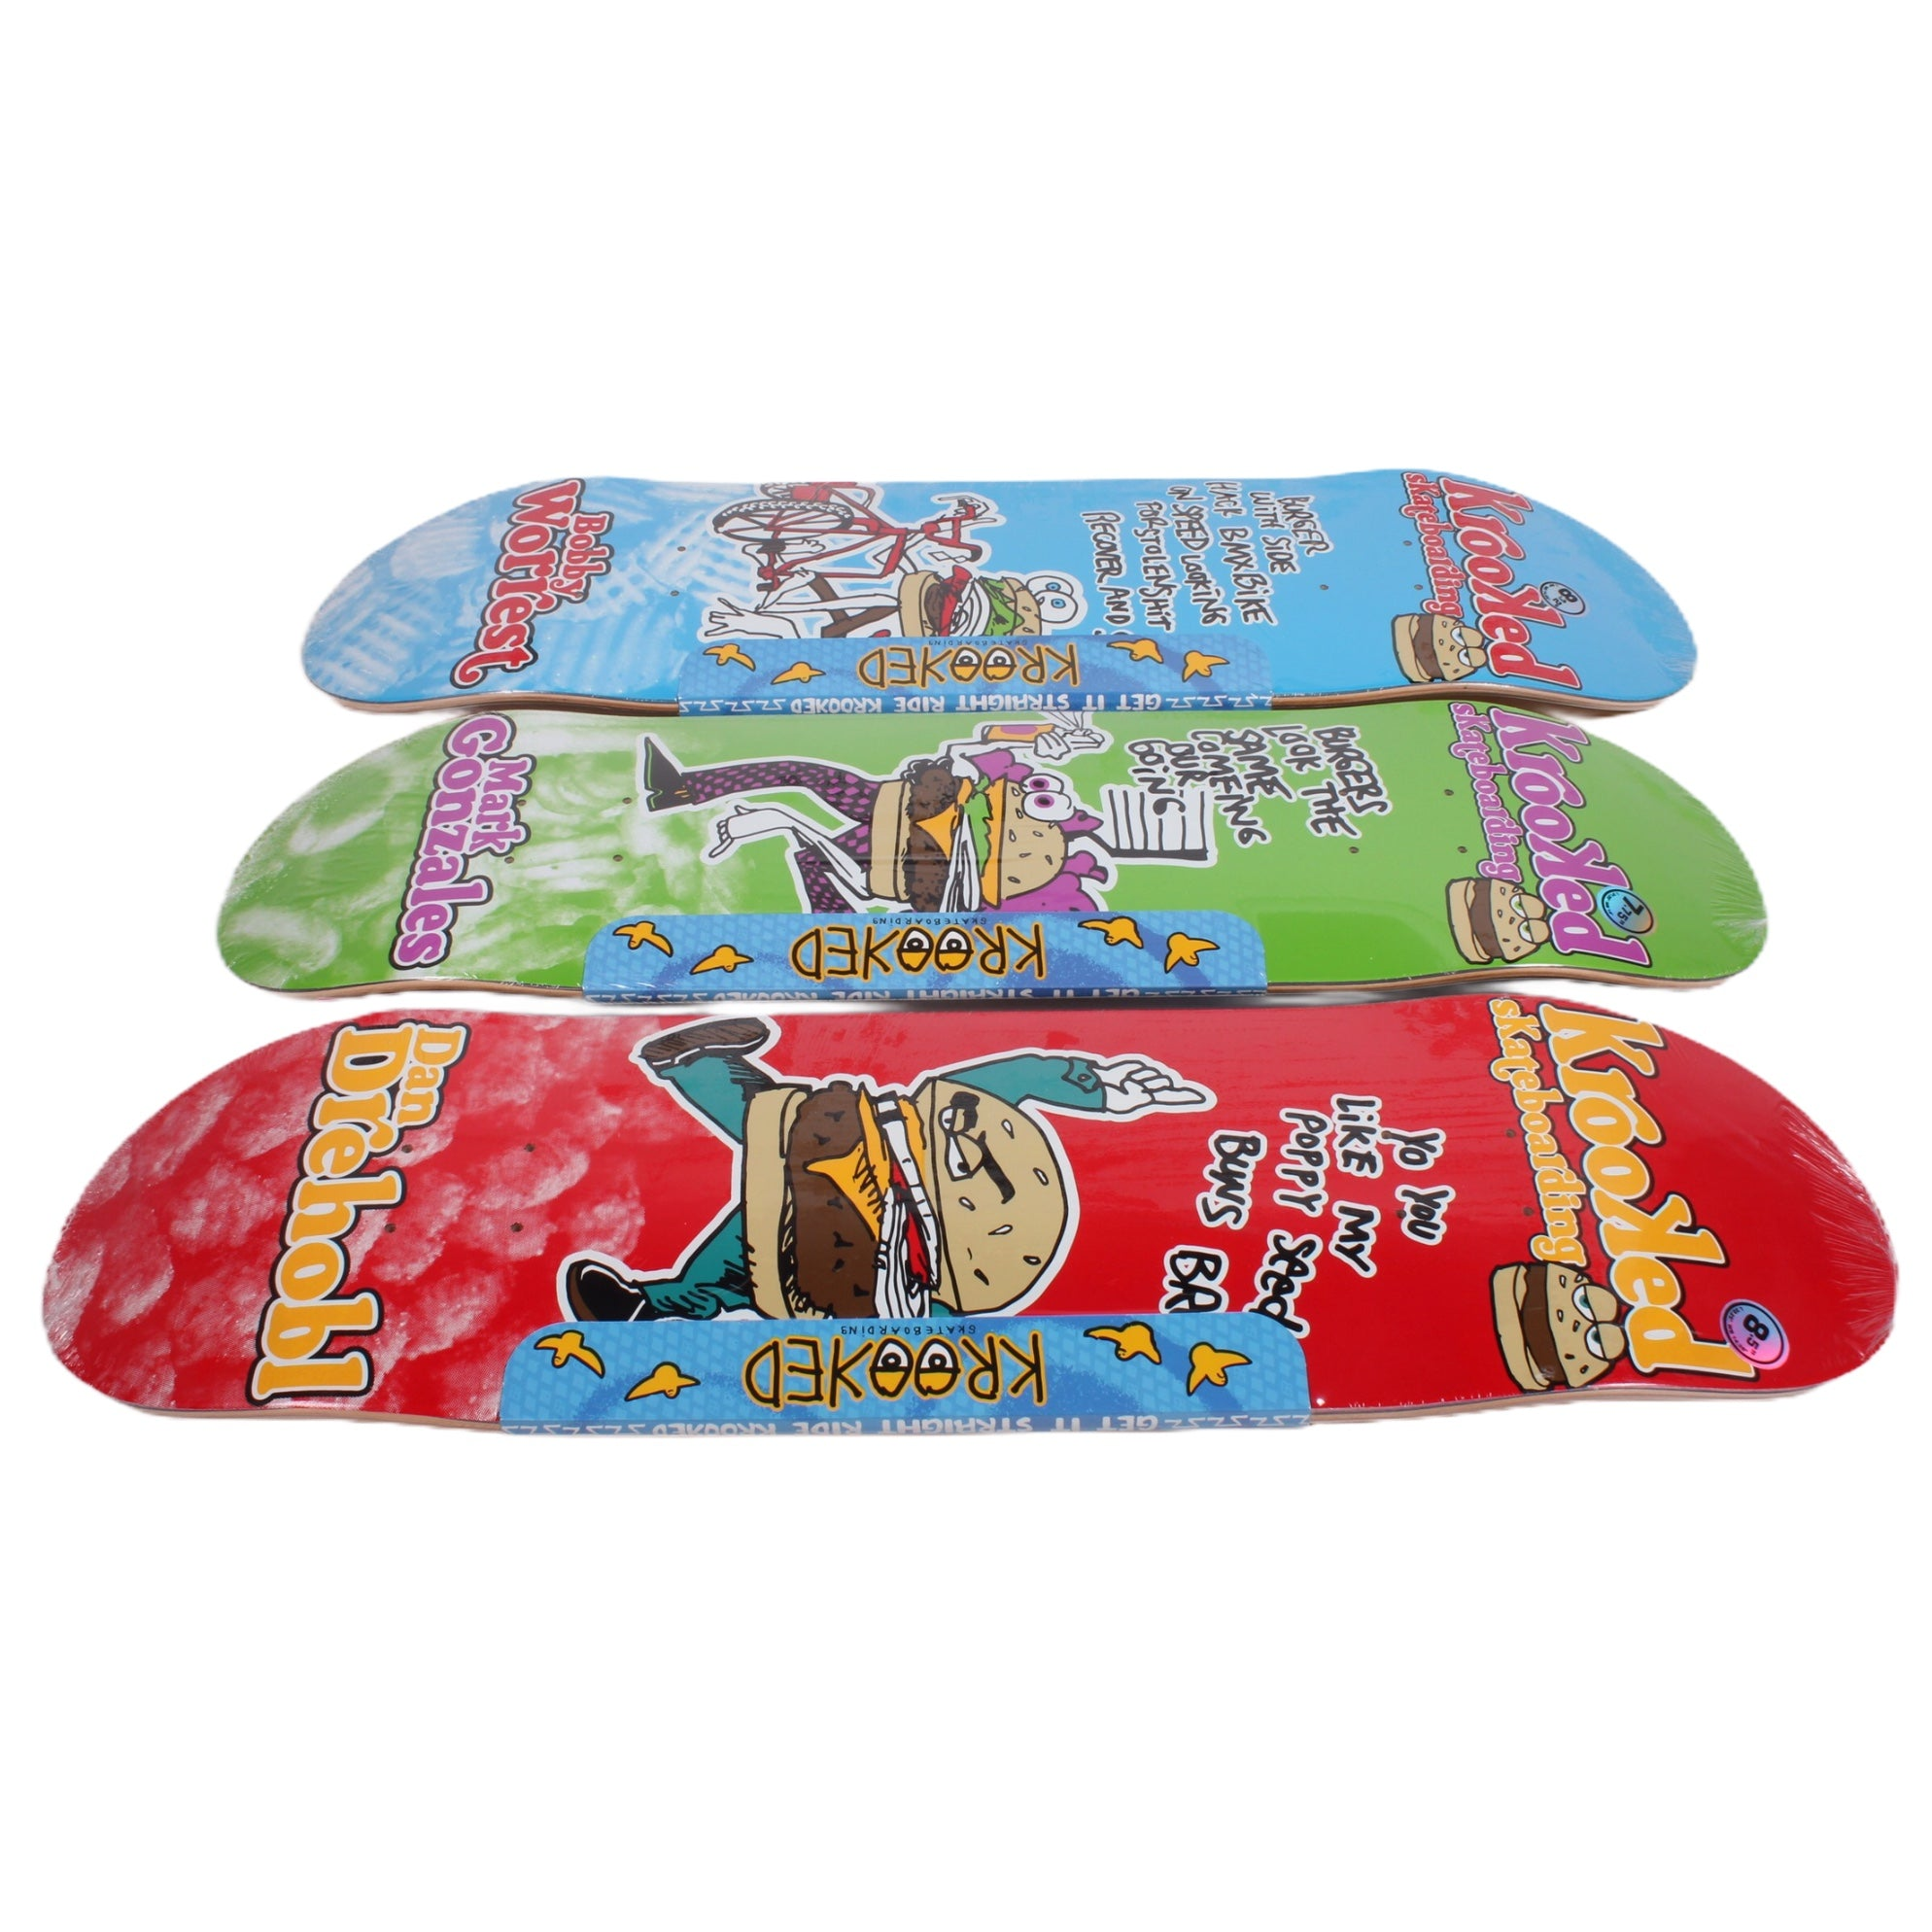 Overripe Krooked Set of 3 Decks Flying Burger Gang 2015